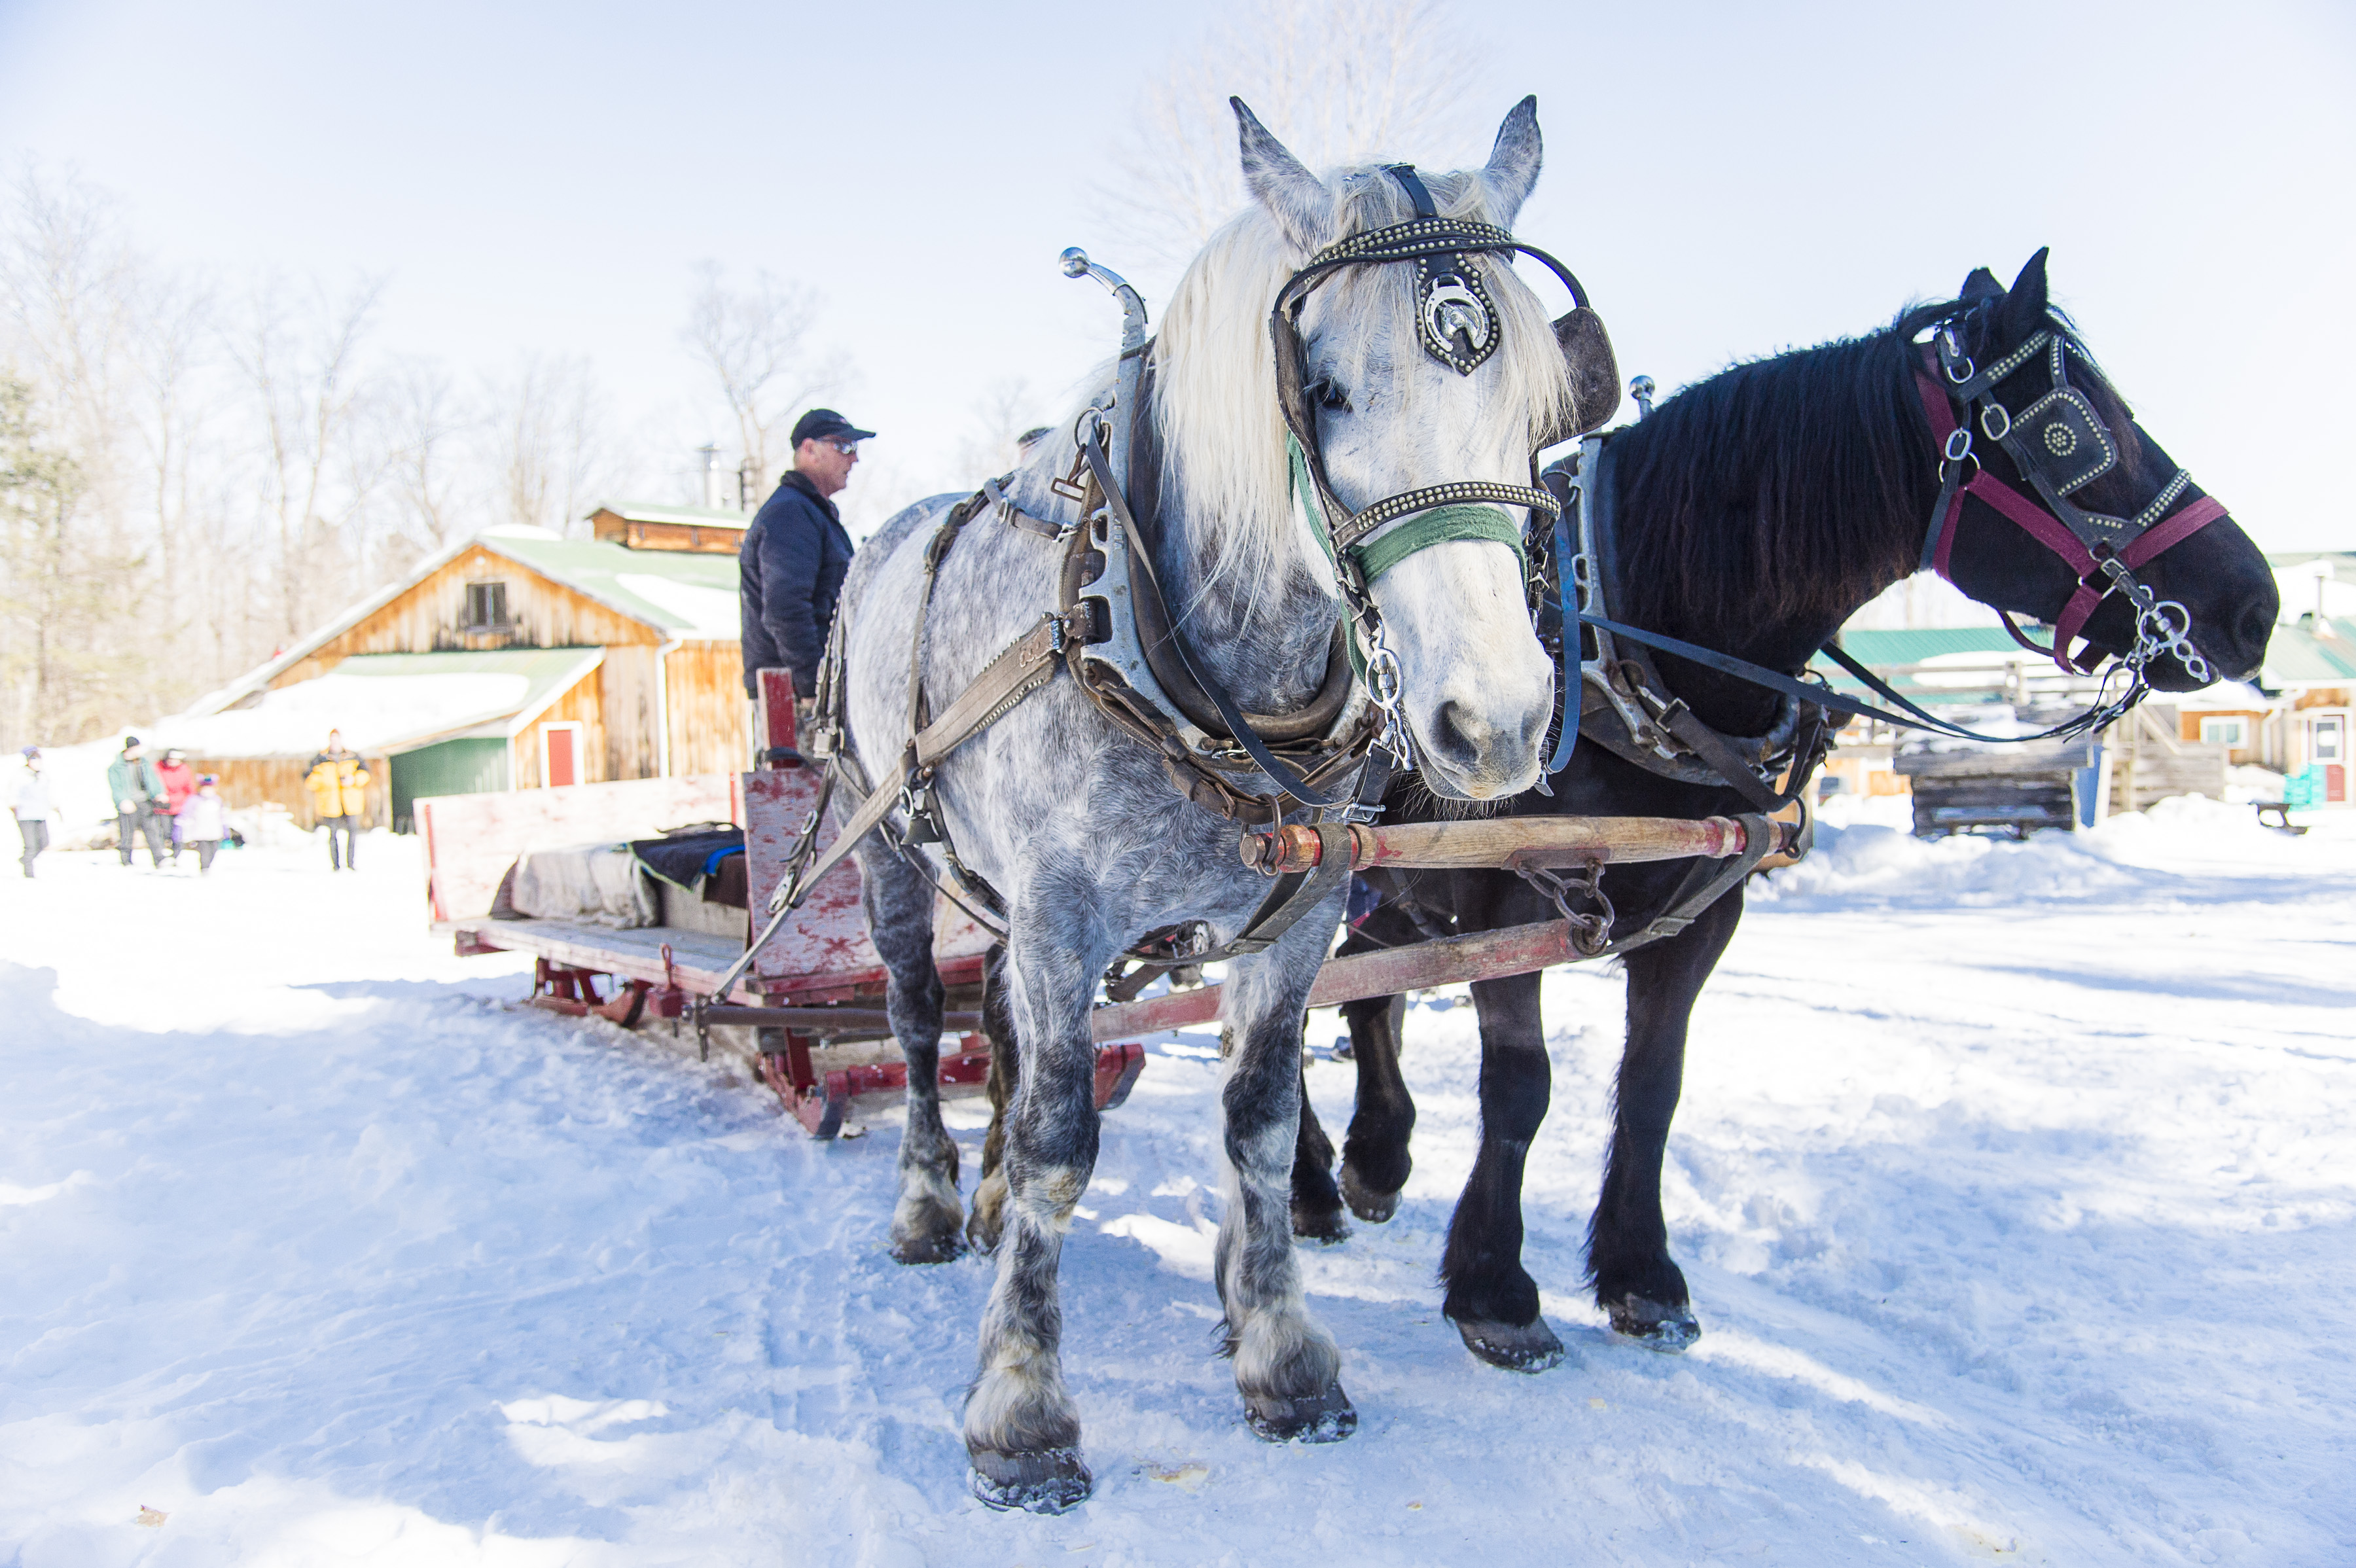 ATTRACTION _ FULTONS _ MAPLE EXPERIENCES _ OHTO PHOTOSHOOT _ MAPLE HORSE SLEIGH RIDE _ WINTER _ CREDIT TO TREVOR%2